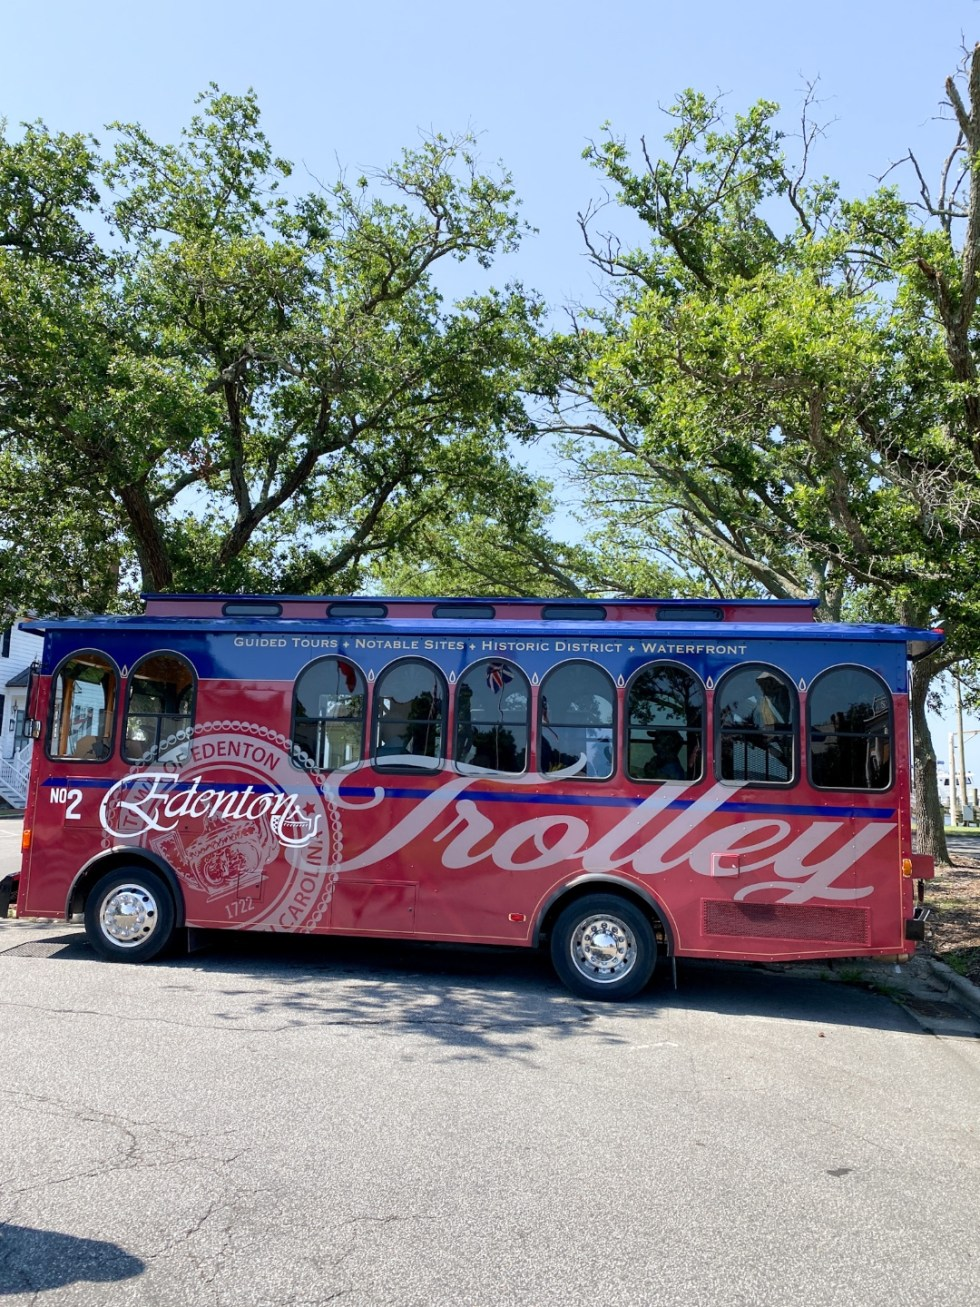 Edenton Travel Guide by popular NC travel guid, I'm Fixin' To: image of a trolley tour bus.